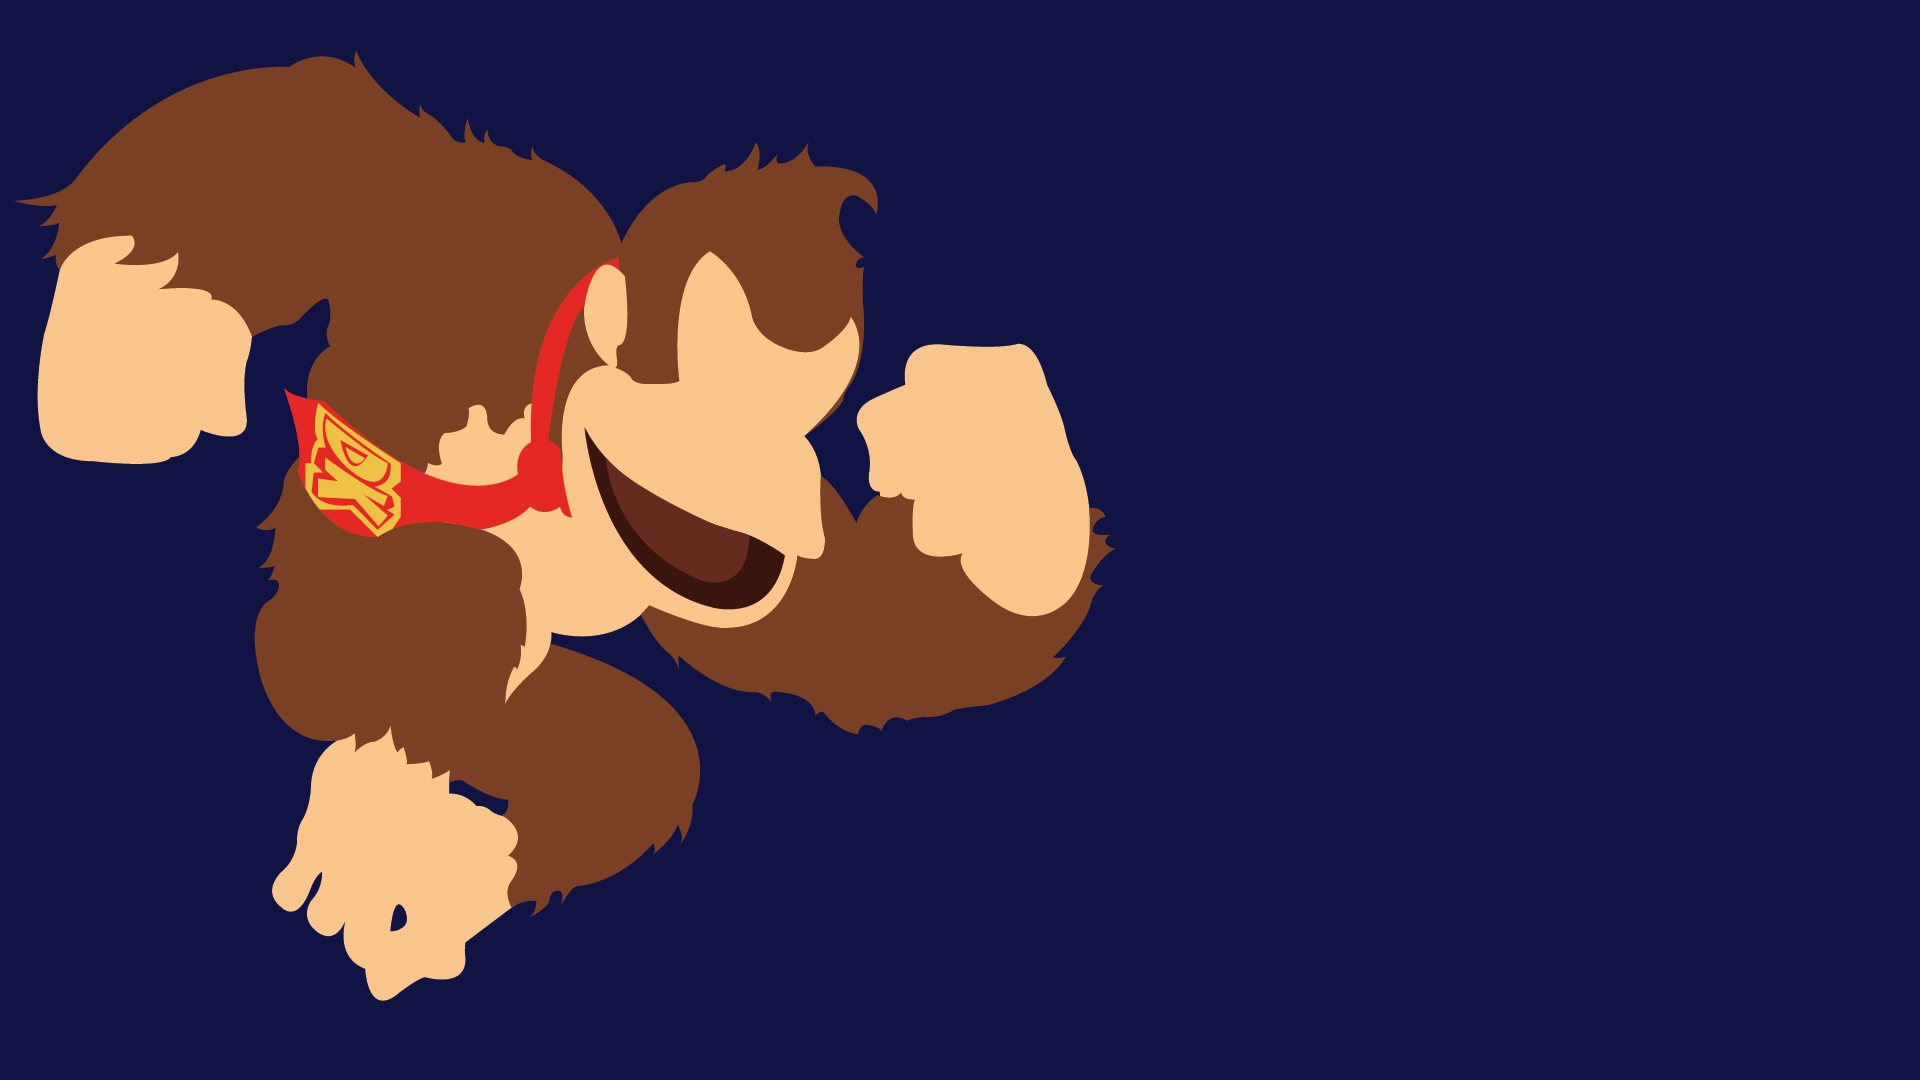 Diddy Kong Wallpapers - Top Free Diddy